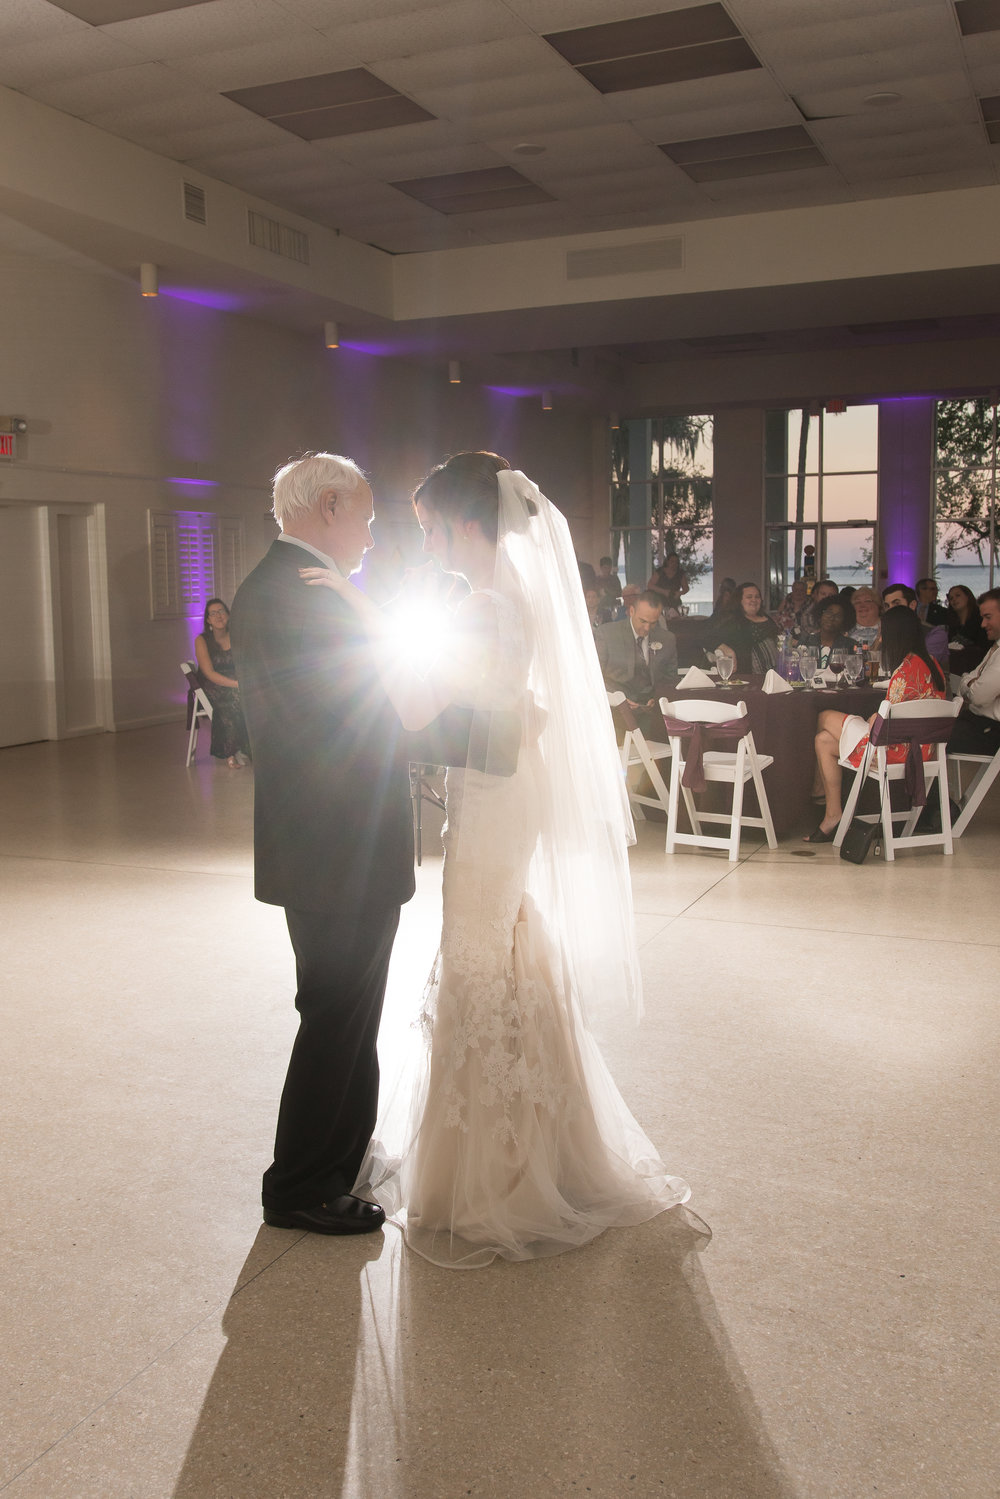 edding danpictures, wedding pictures, tampa weddings, wedding